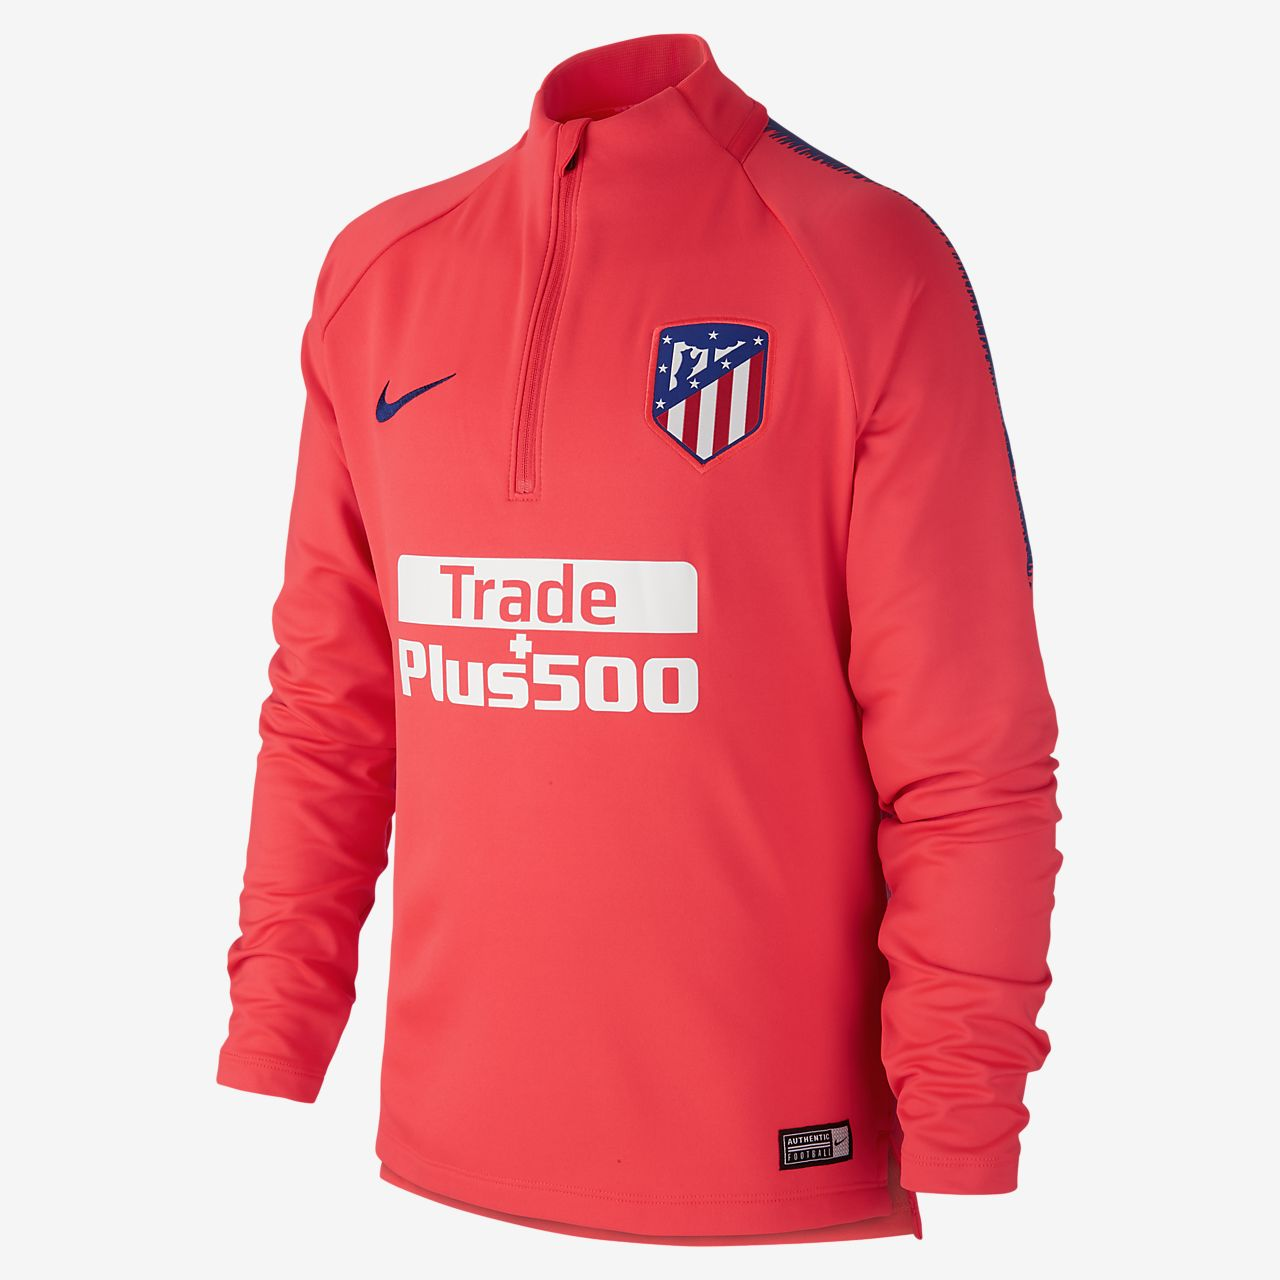 Atletico de Madrid Dri-FIT Squad Drill Older Kids' Long-Sleeve Football Top